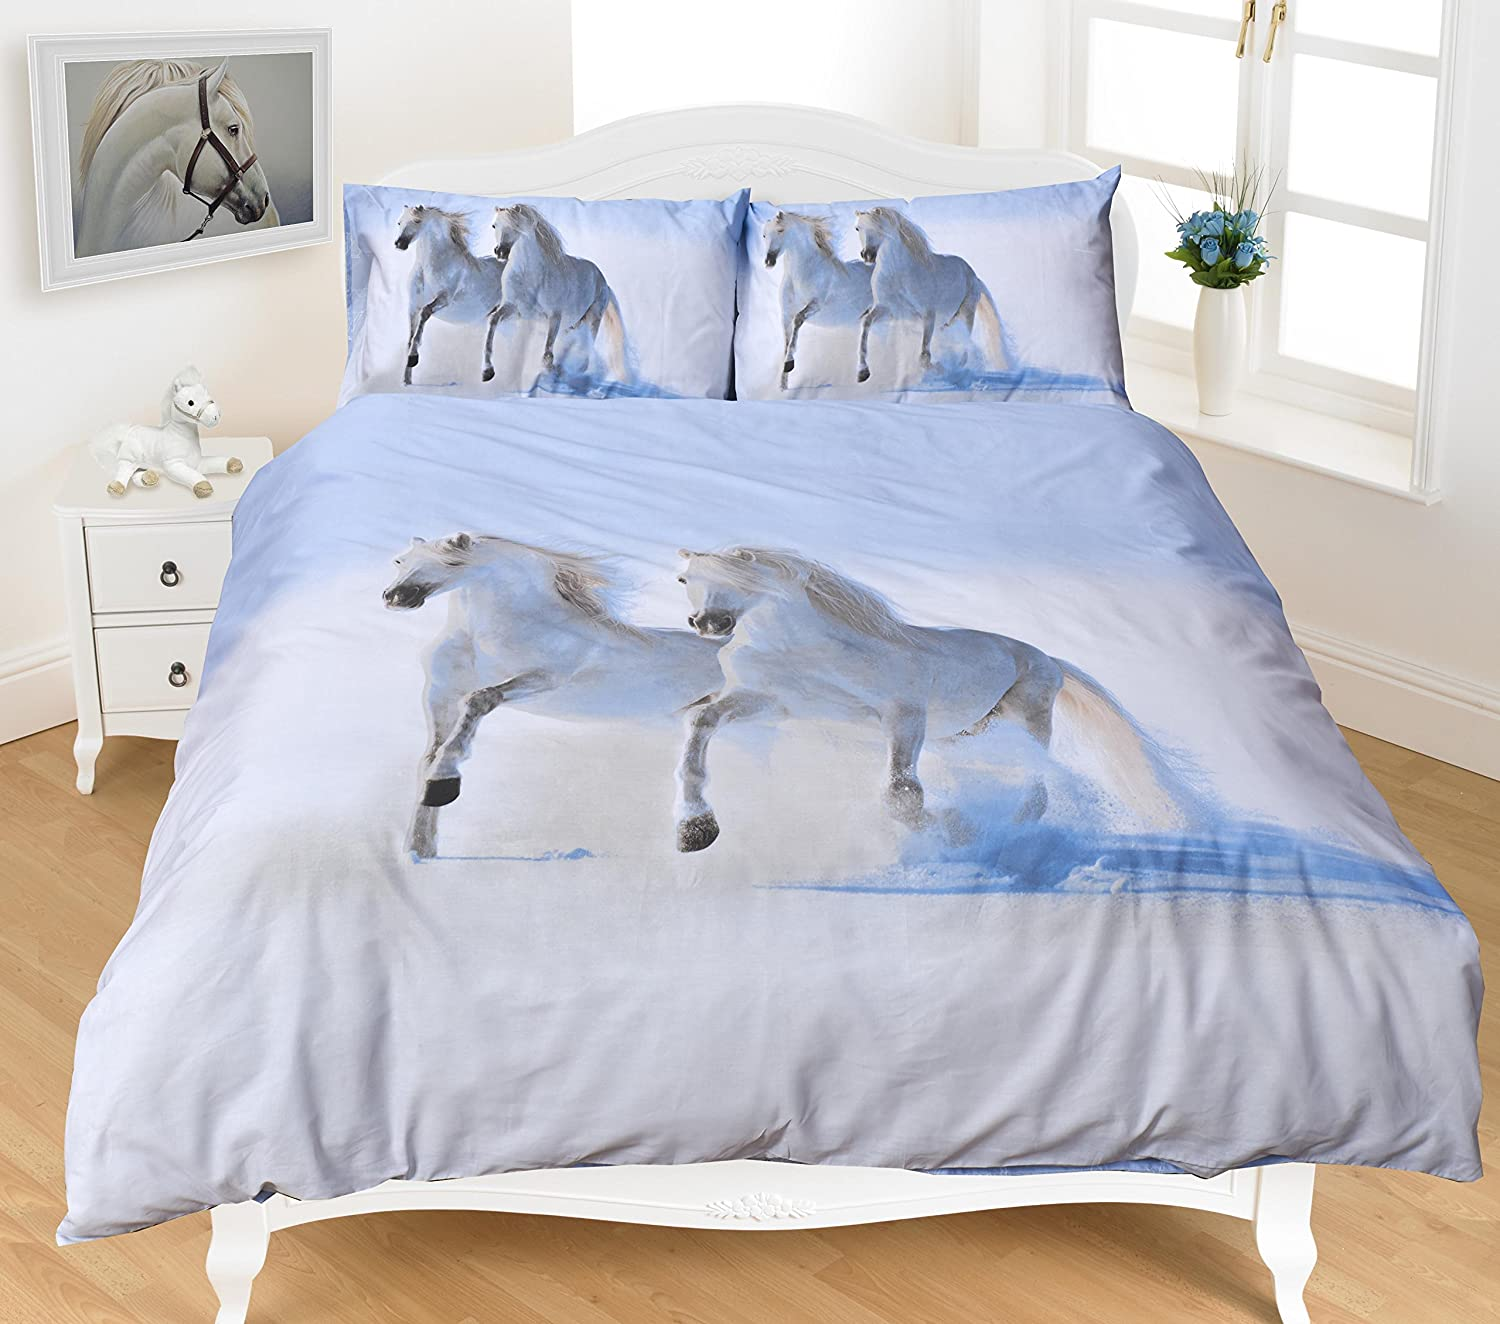 CLICKTOSTYLE DUVET SET QUILT COVER PILLOW CASES BEDDING SET SINGLE SIZE (HORSES)